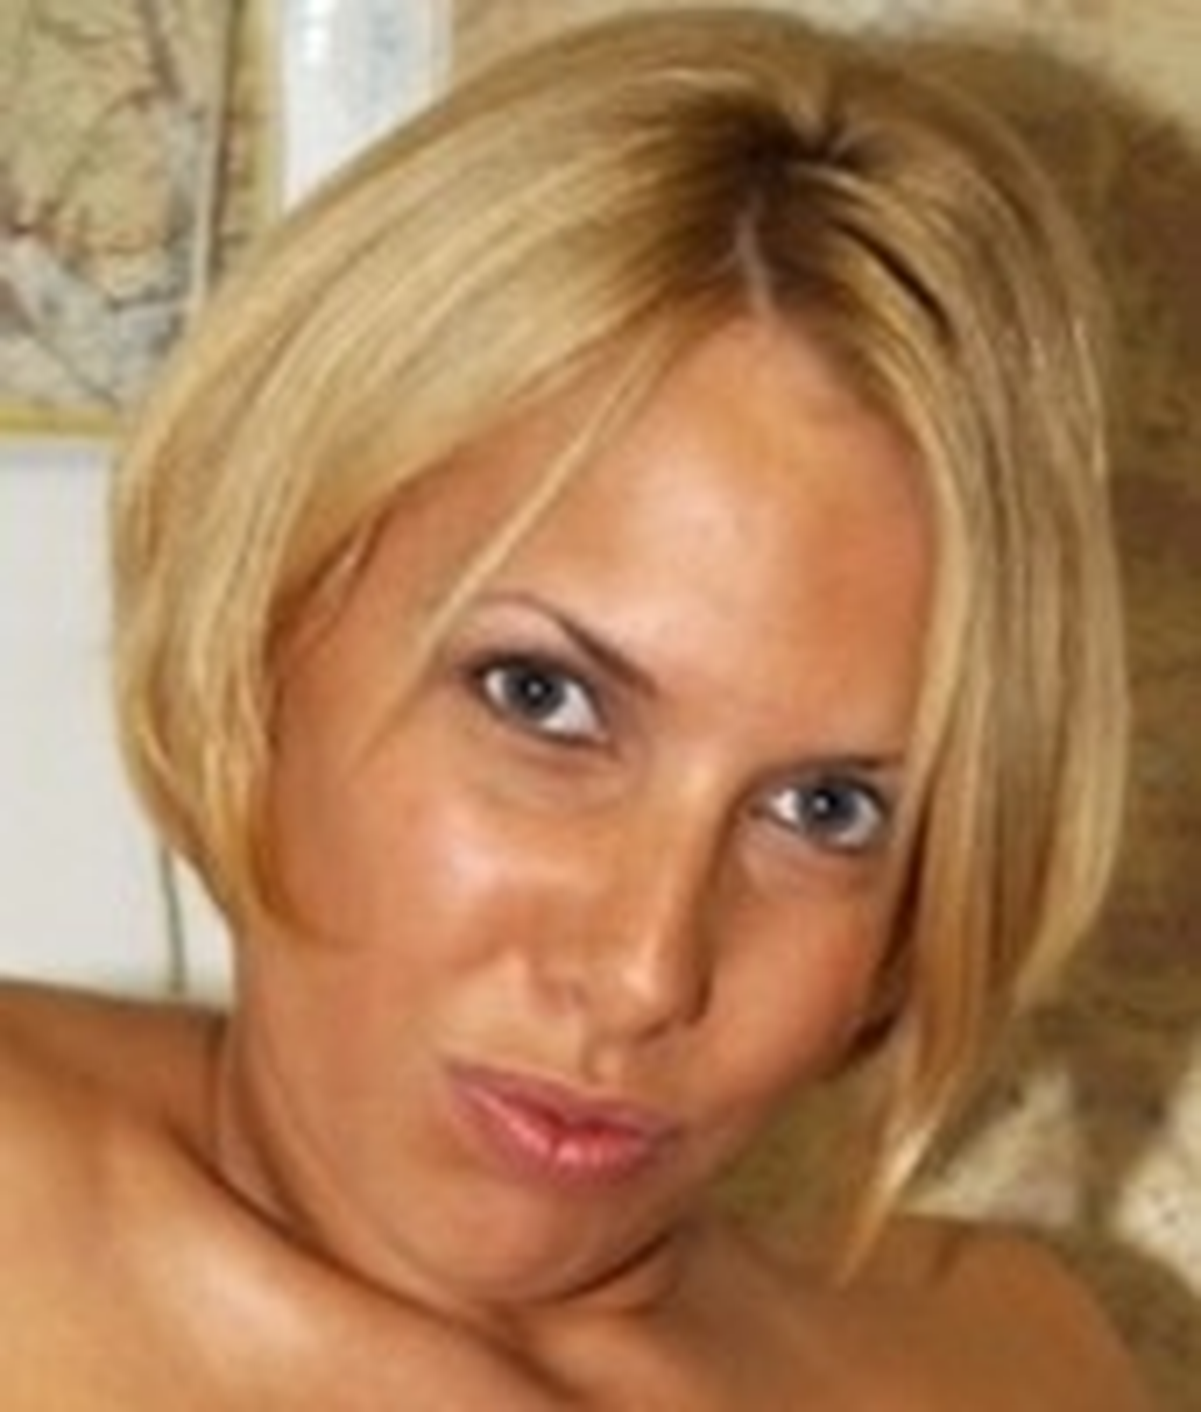 seems me, alice threesome dp hairy pussy troia your place